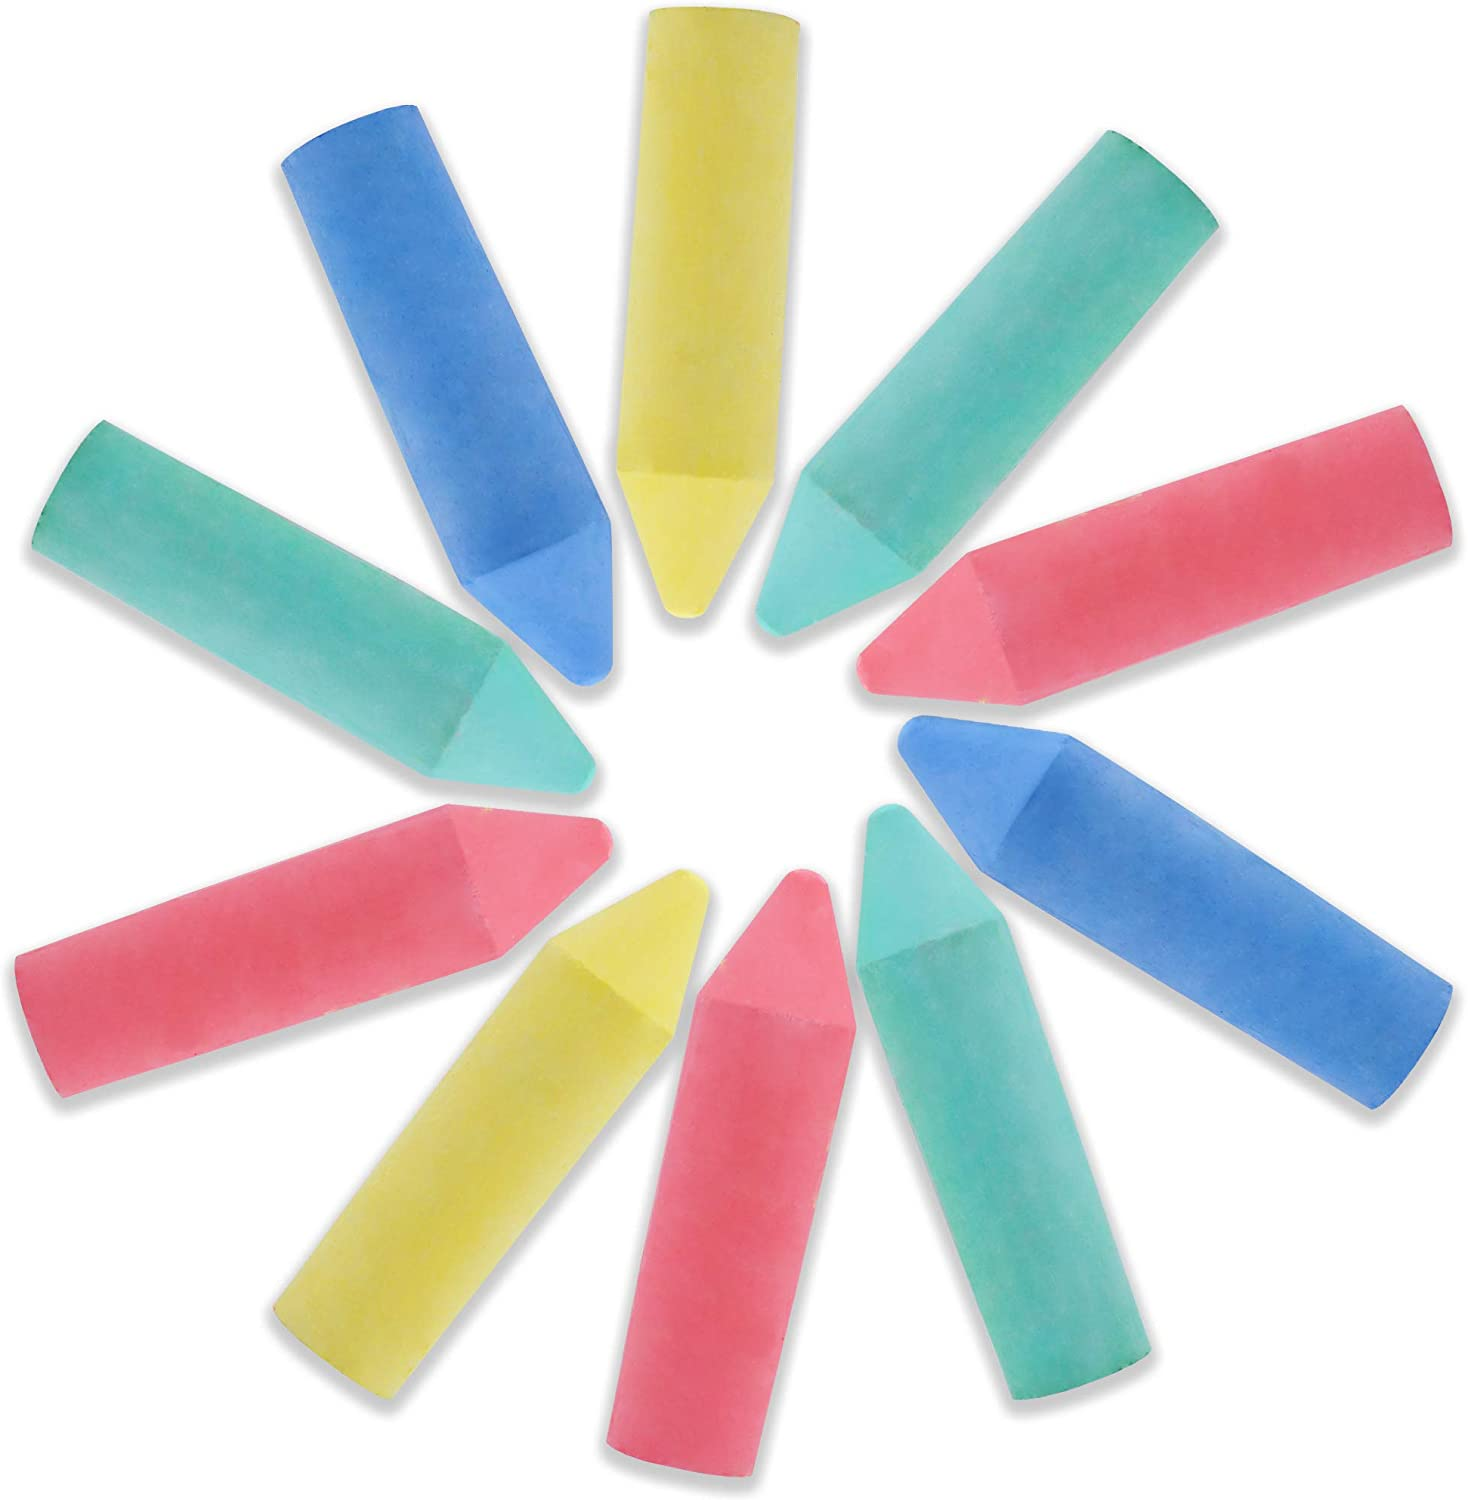 12 PCS Non-Toxic Washable Outdoor Jumbo Sidewalk Chalk Set for Painting on Chalkboard Art Play and Playground Toy